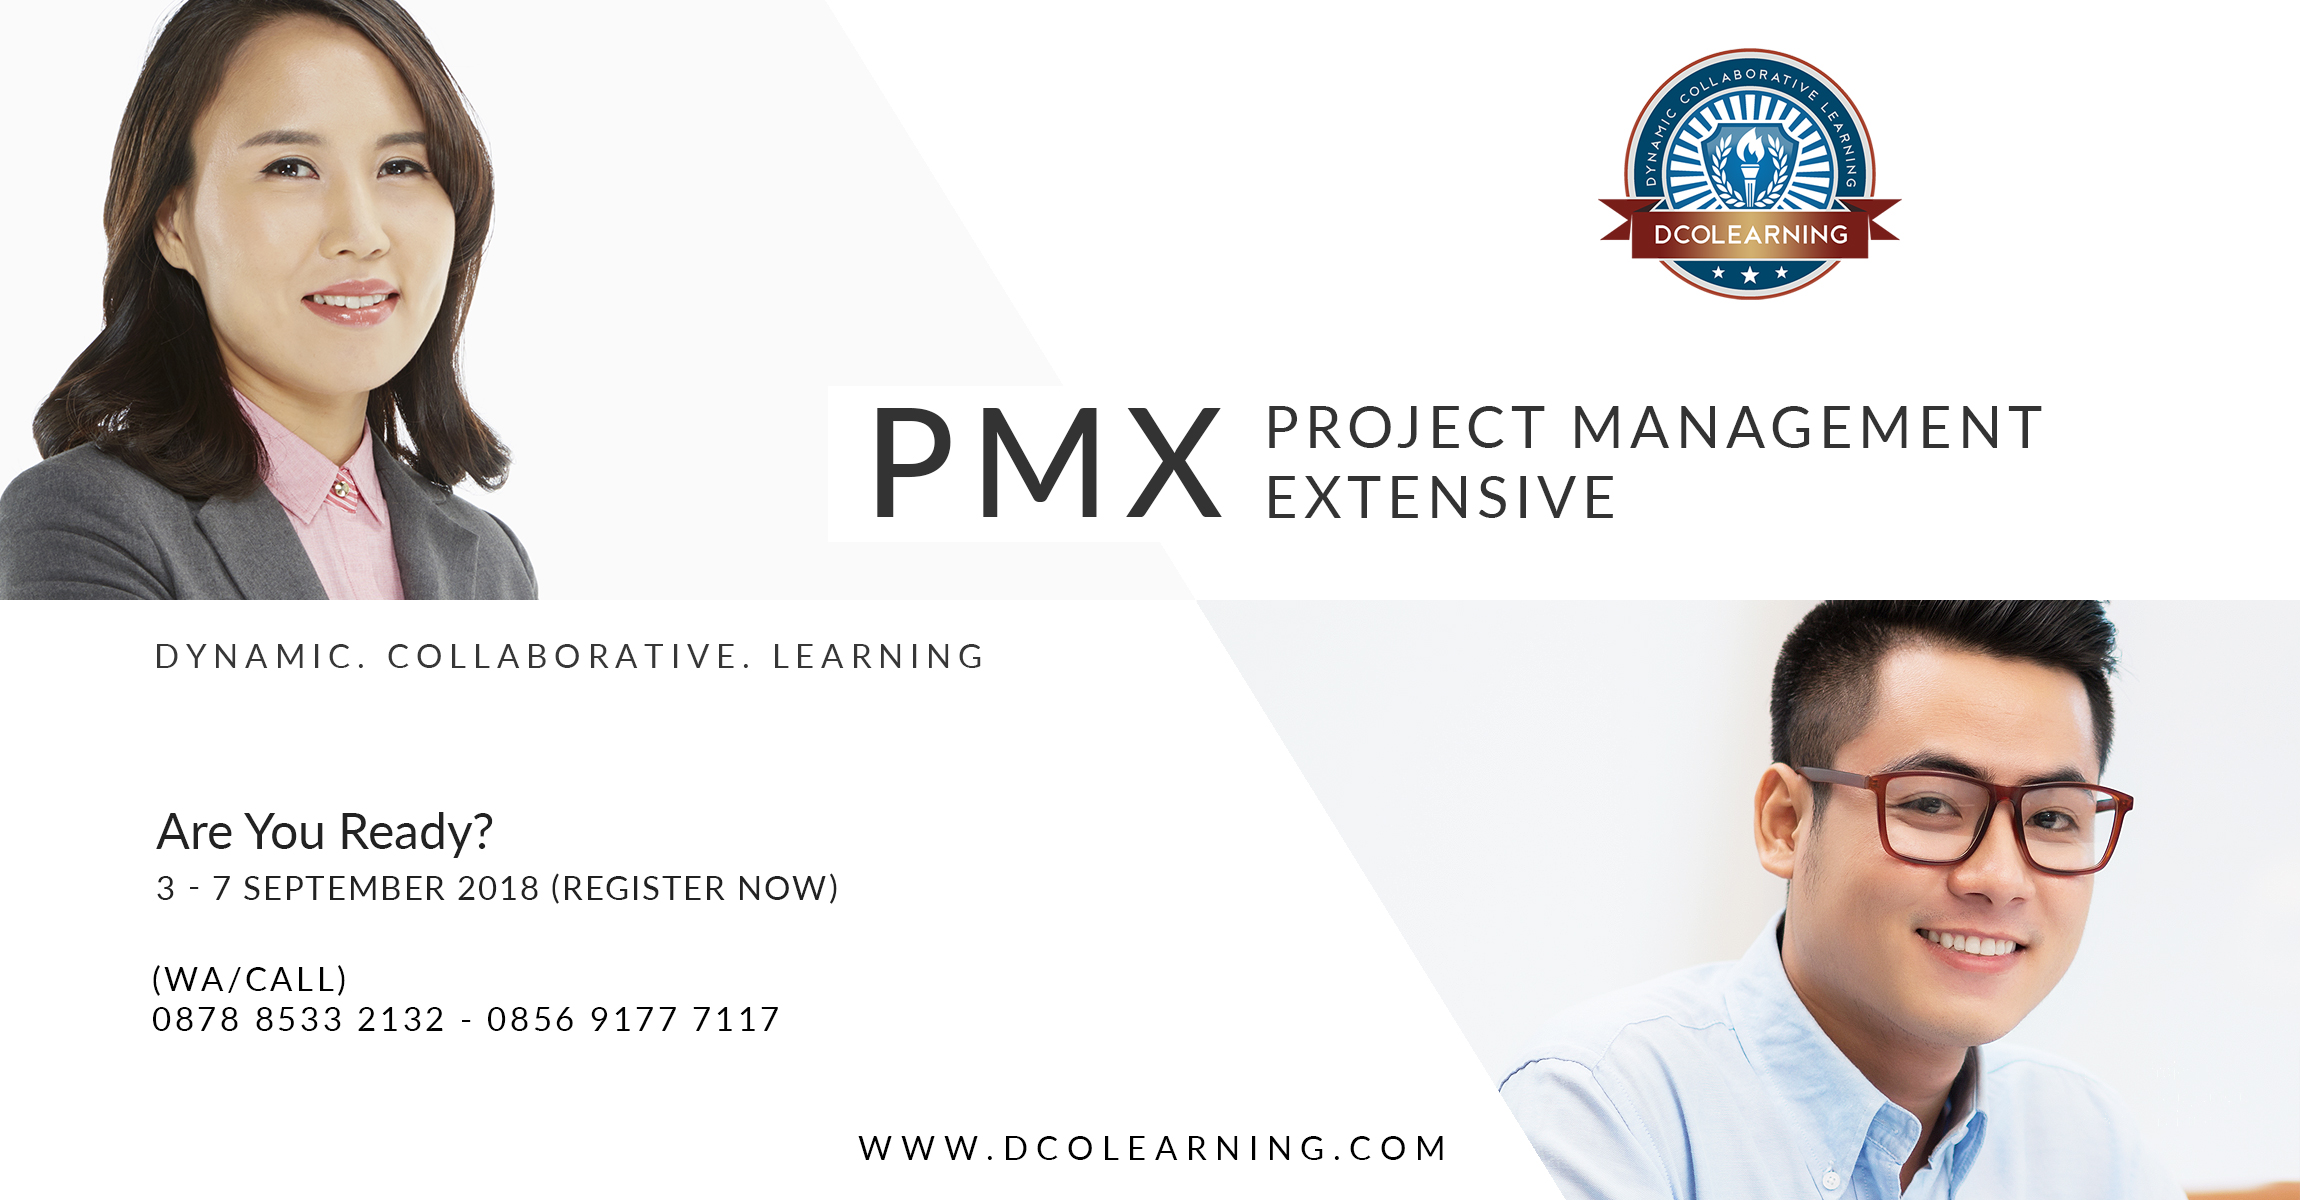 Project Management Extensive Program